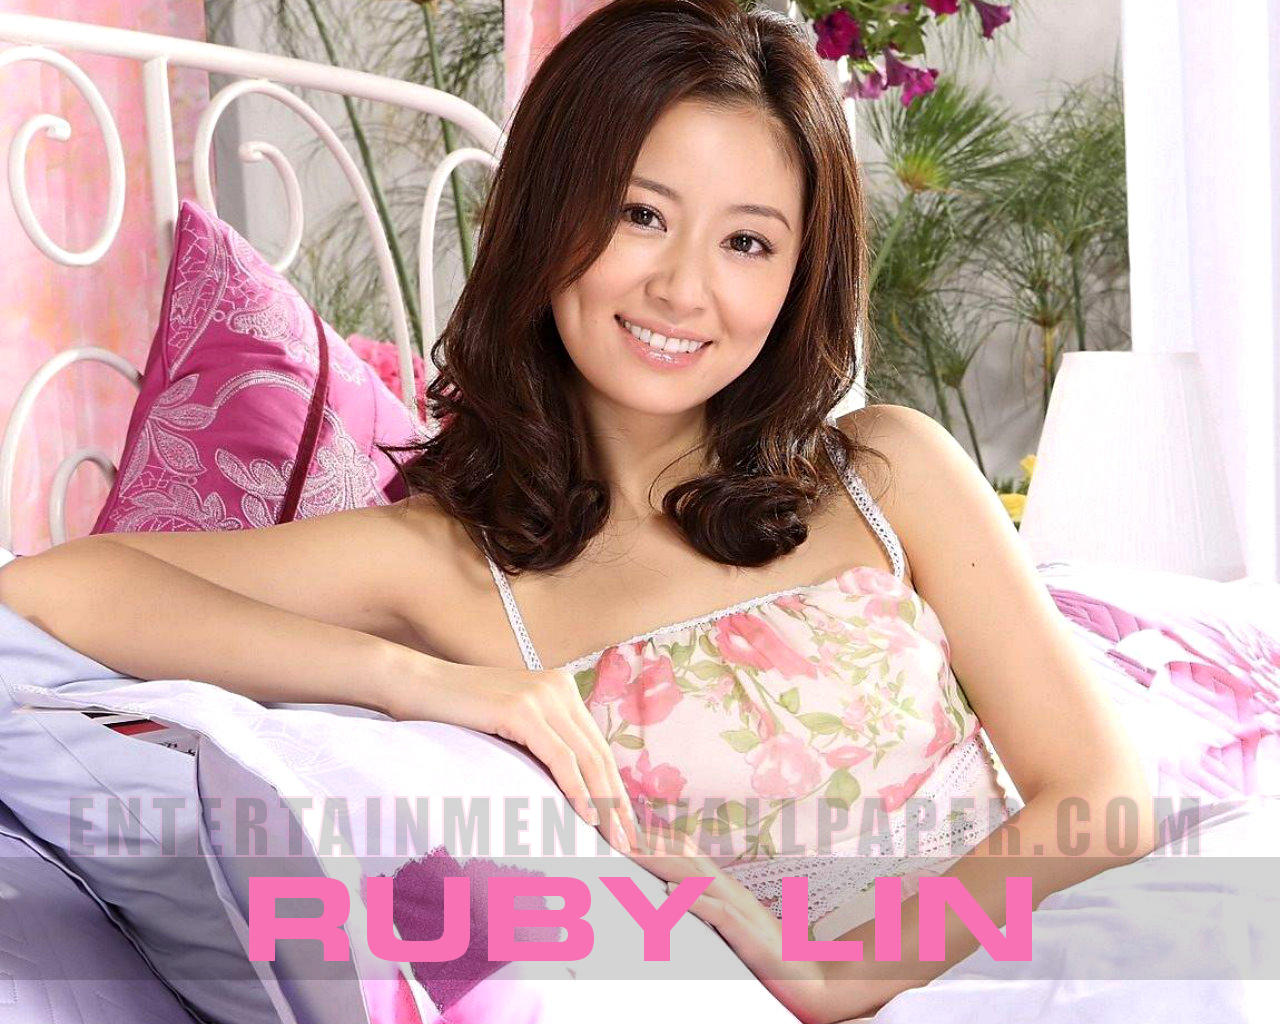 1280x1024 - Ruby Lin Wallpapers 7